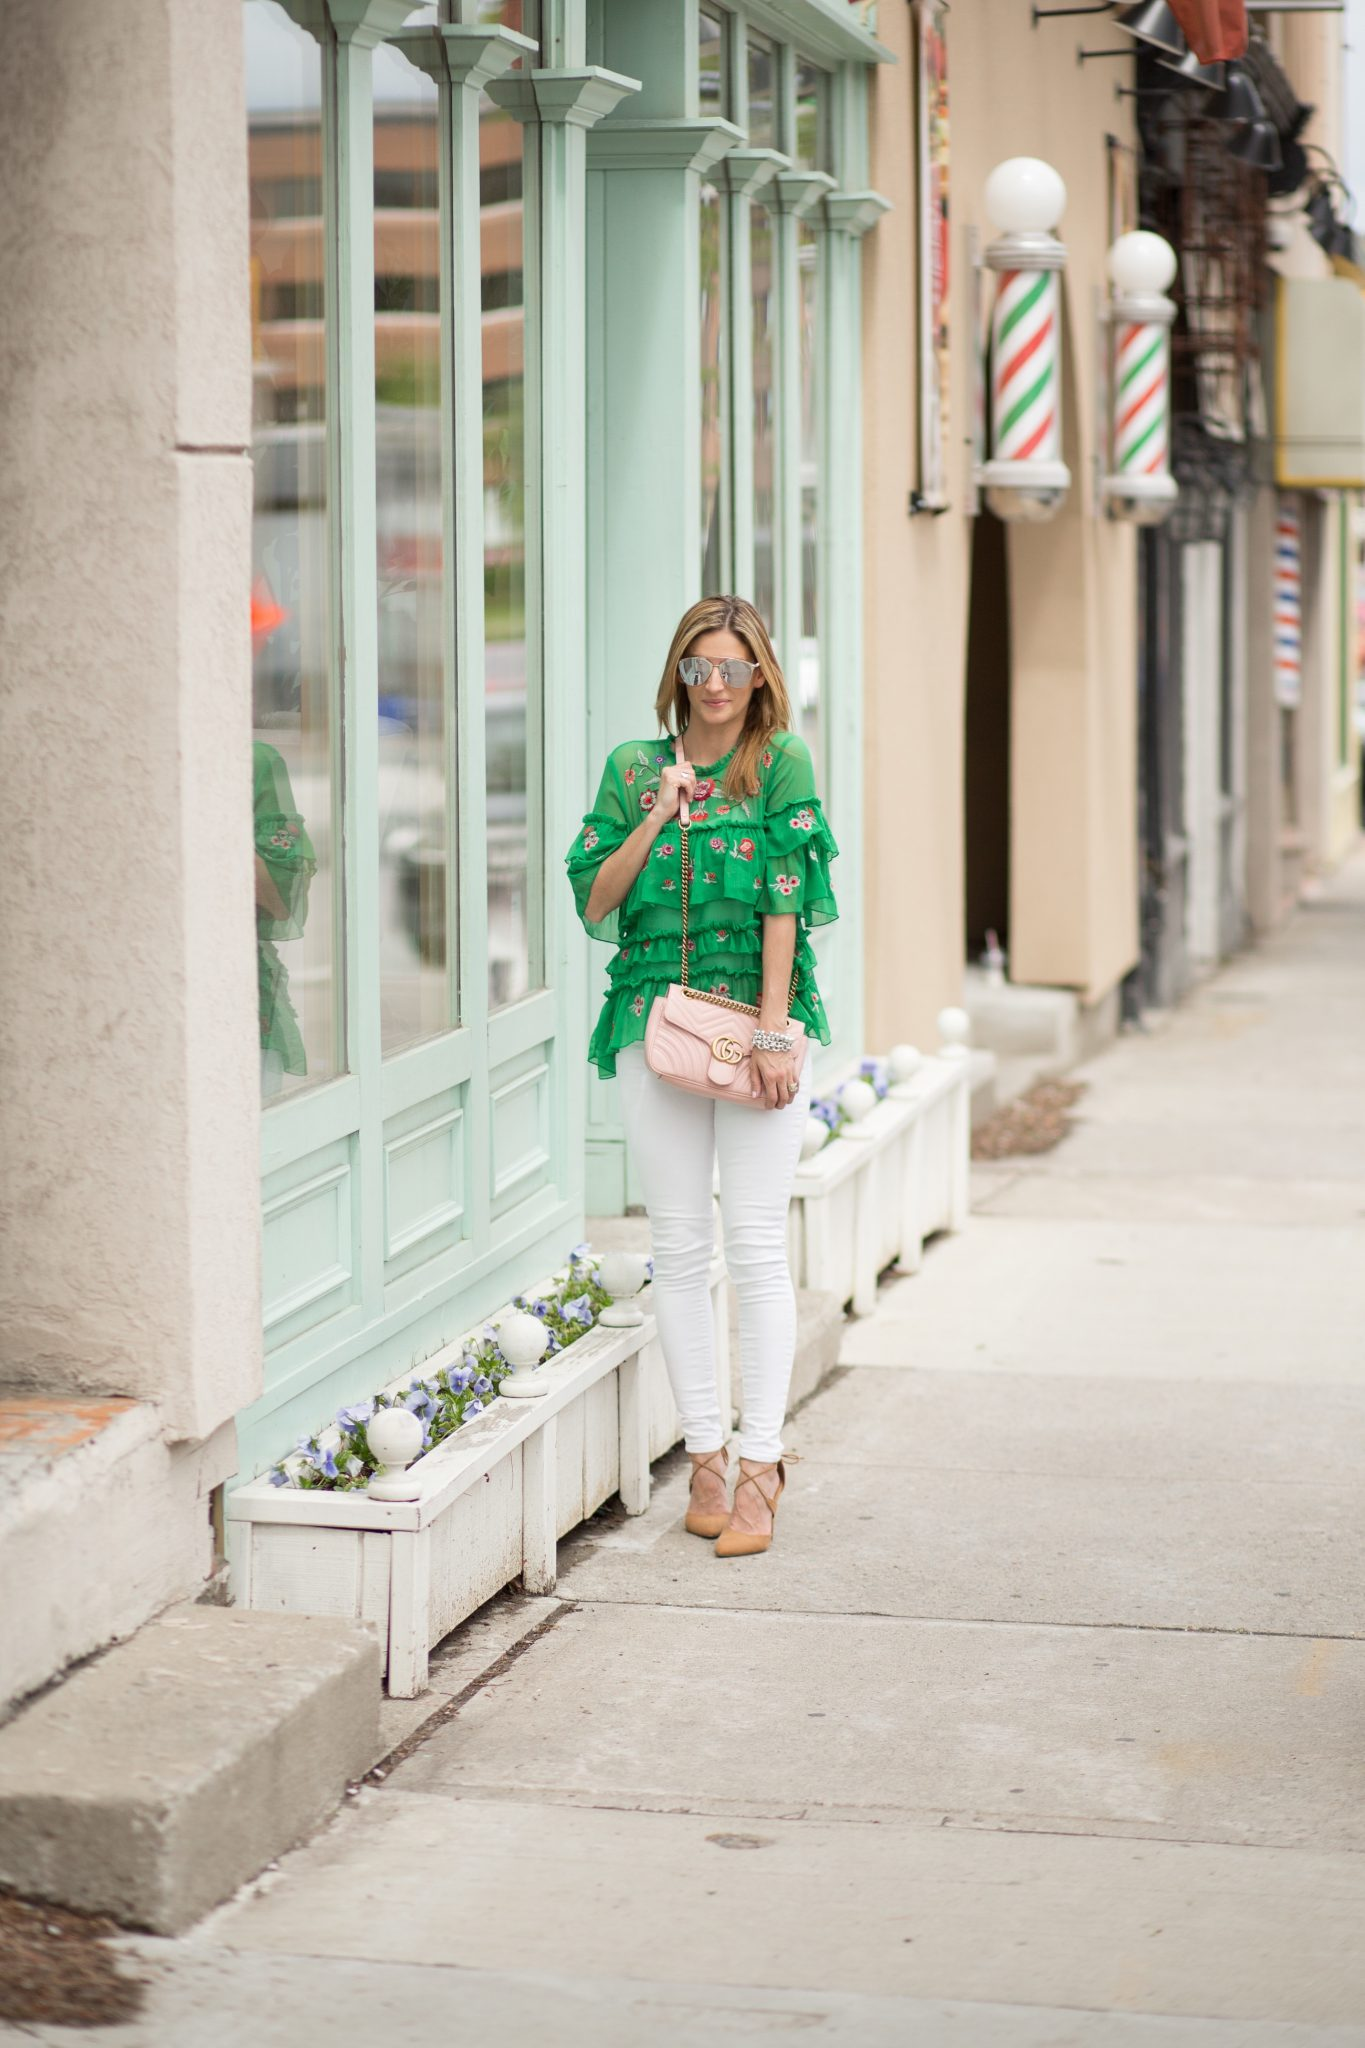 Green ruffled embroidered top Zara, white jeans, pink gucci marmont bag, nude lace up pumps, dior so real sunglasses